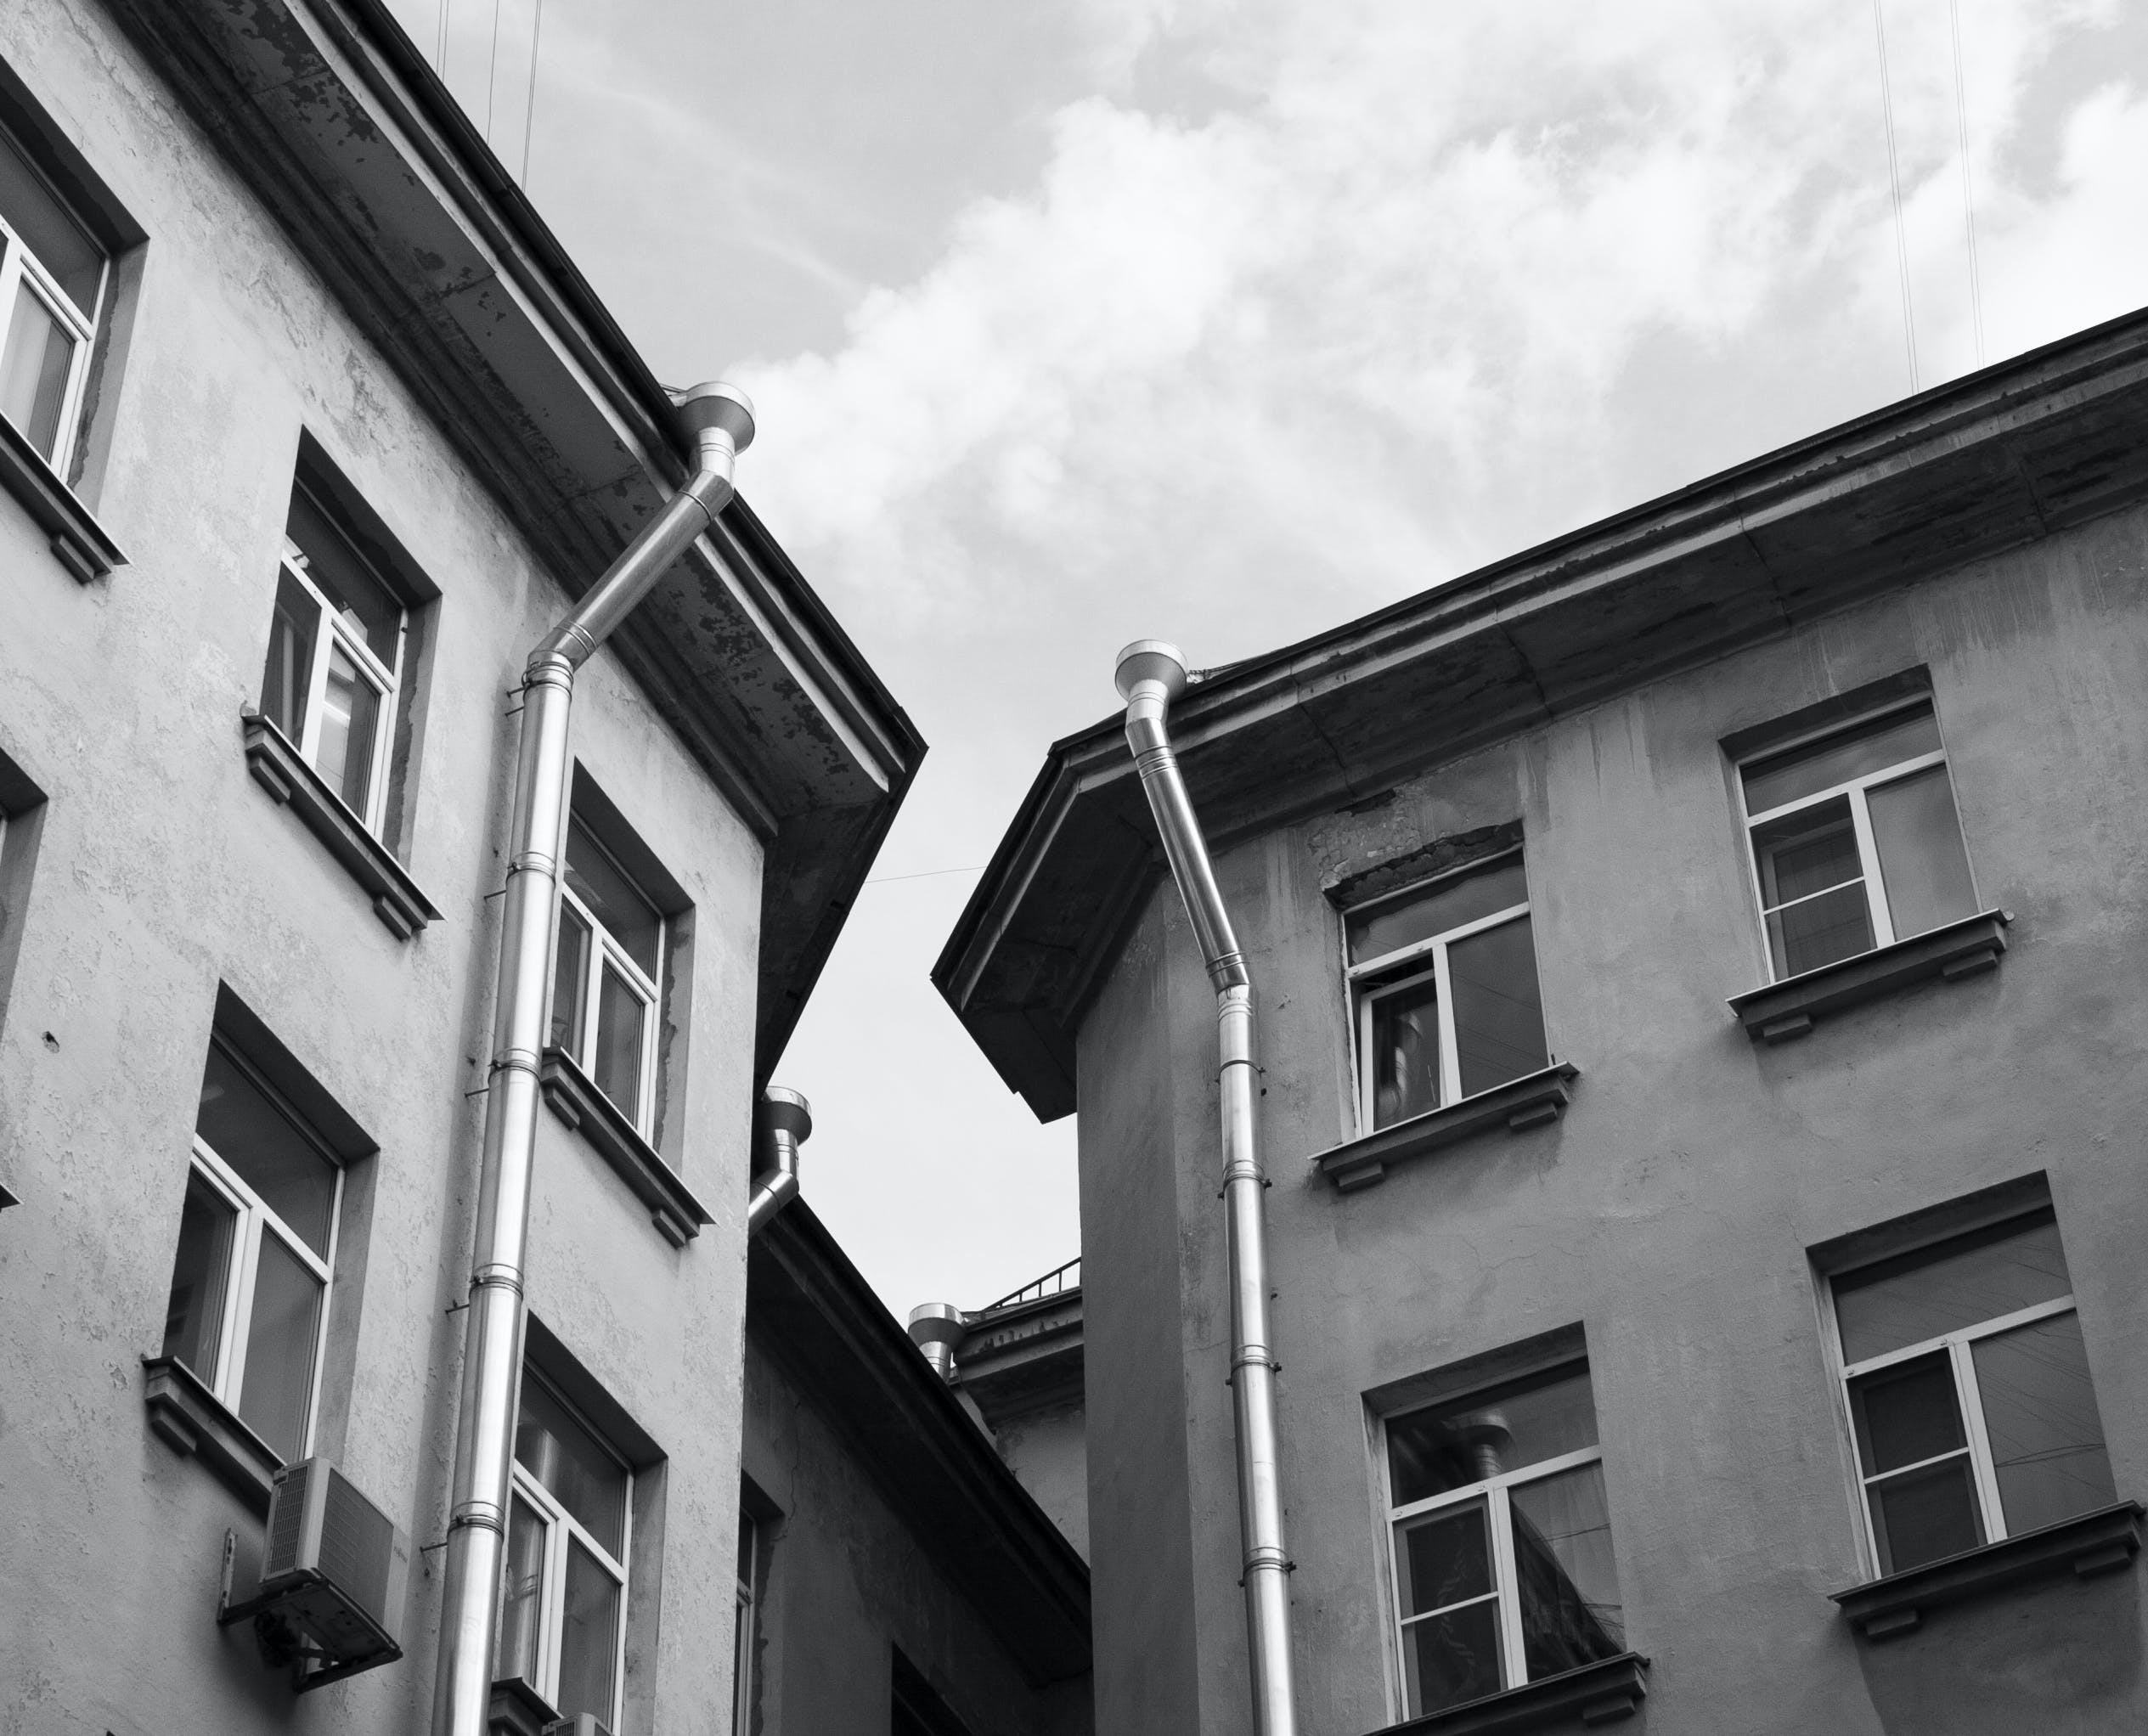 Free stock photo of #architecture, #blackwhite, #city, #черно_белое